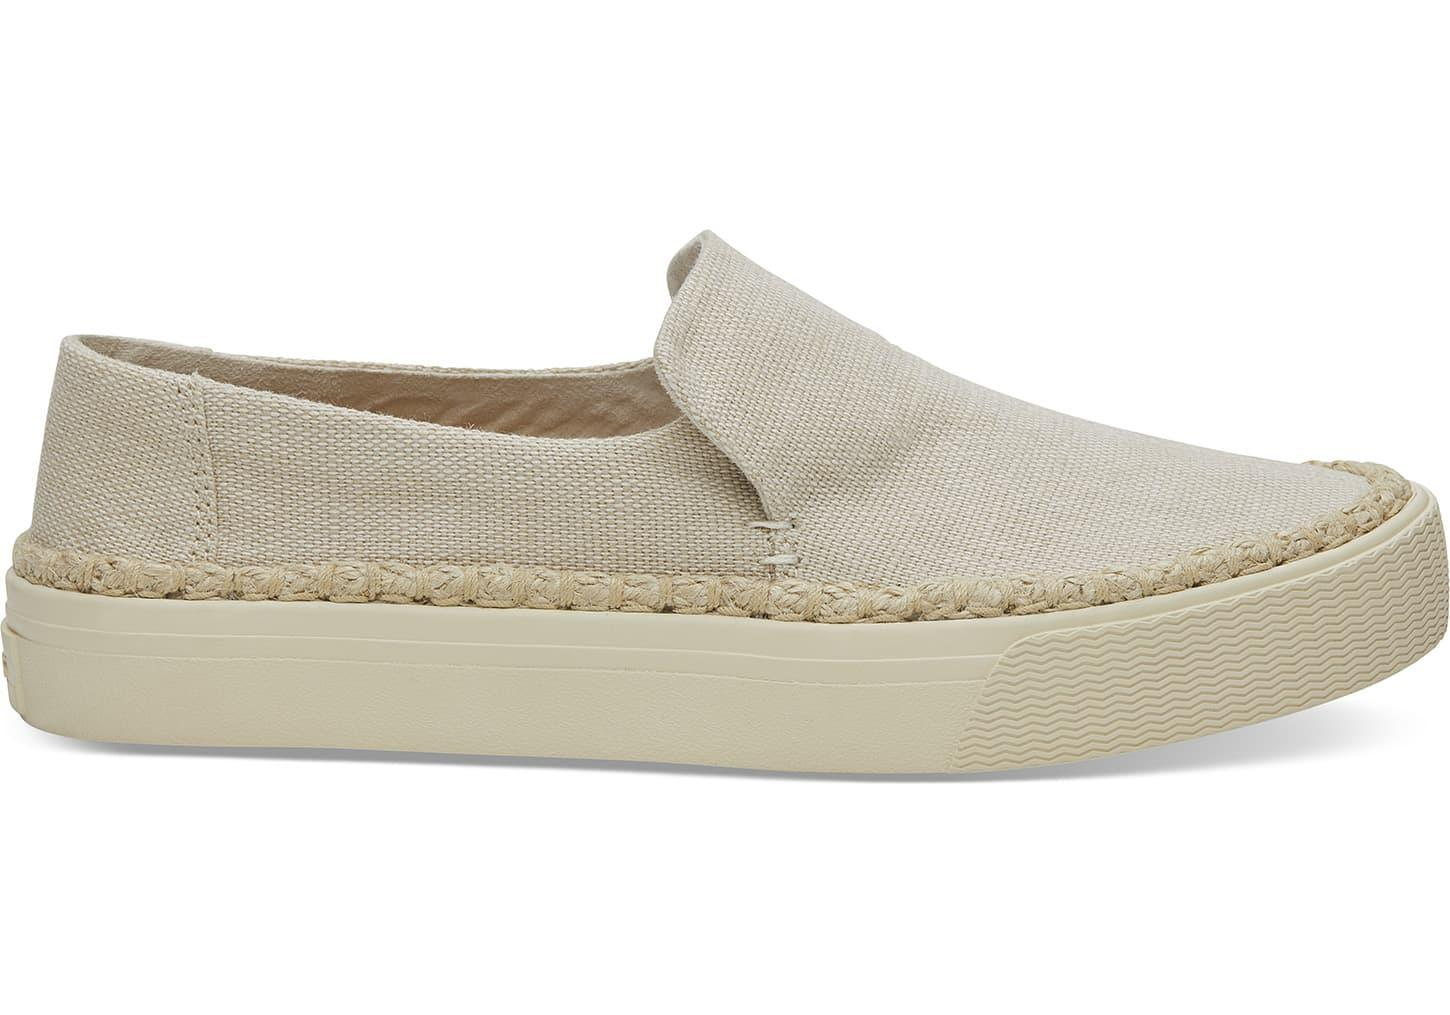 58389db493f TOMS Natural Heritage Canvas Women s Sunset Slip-ons in Natural - Lyst